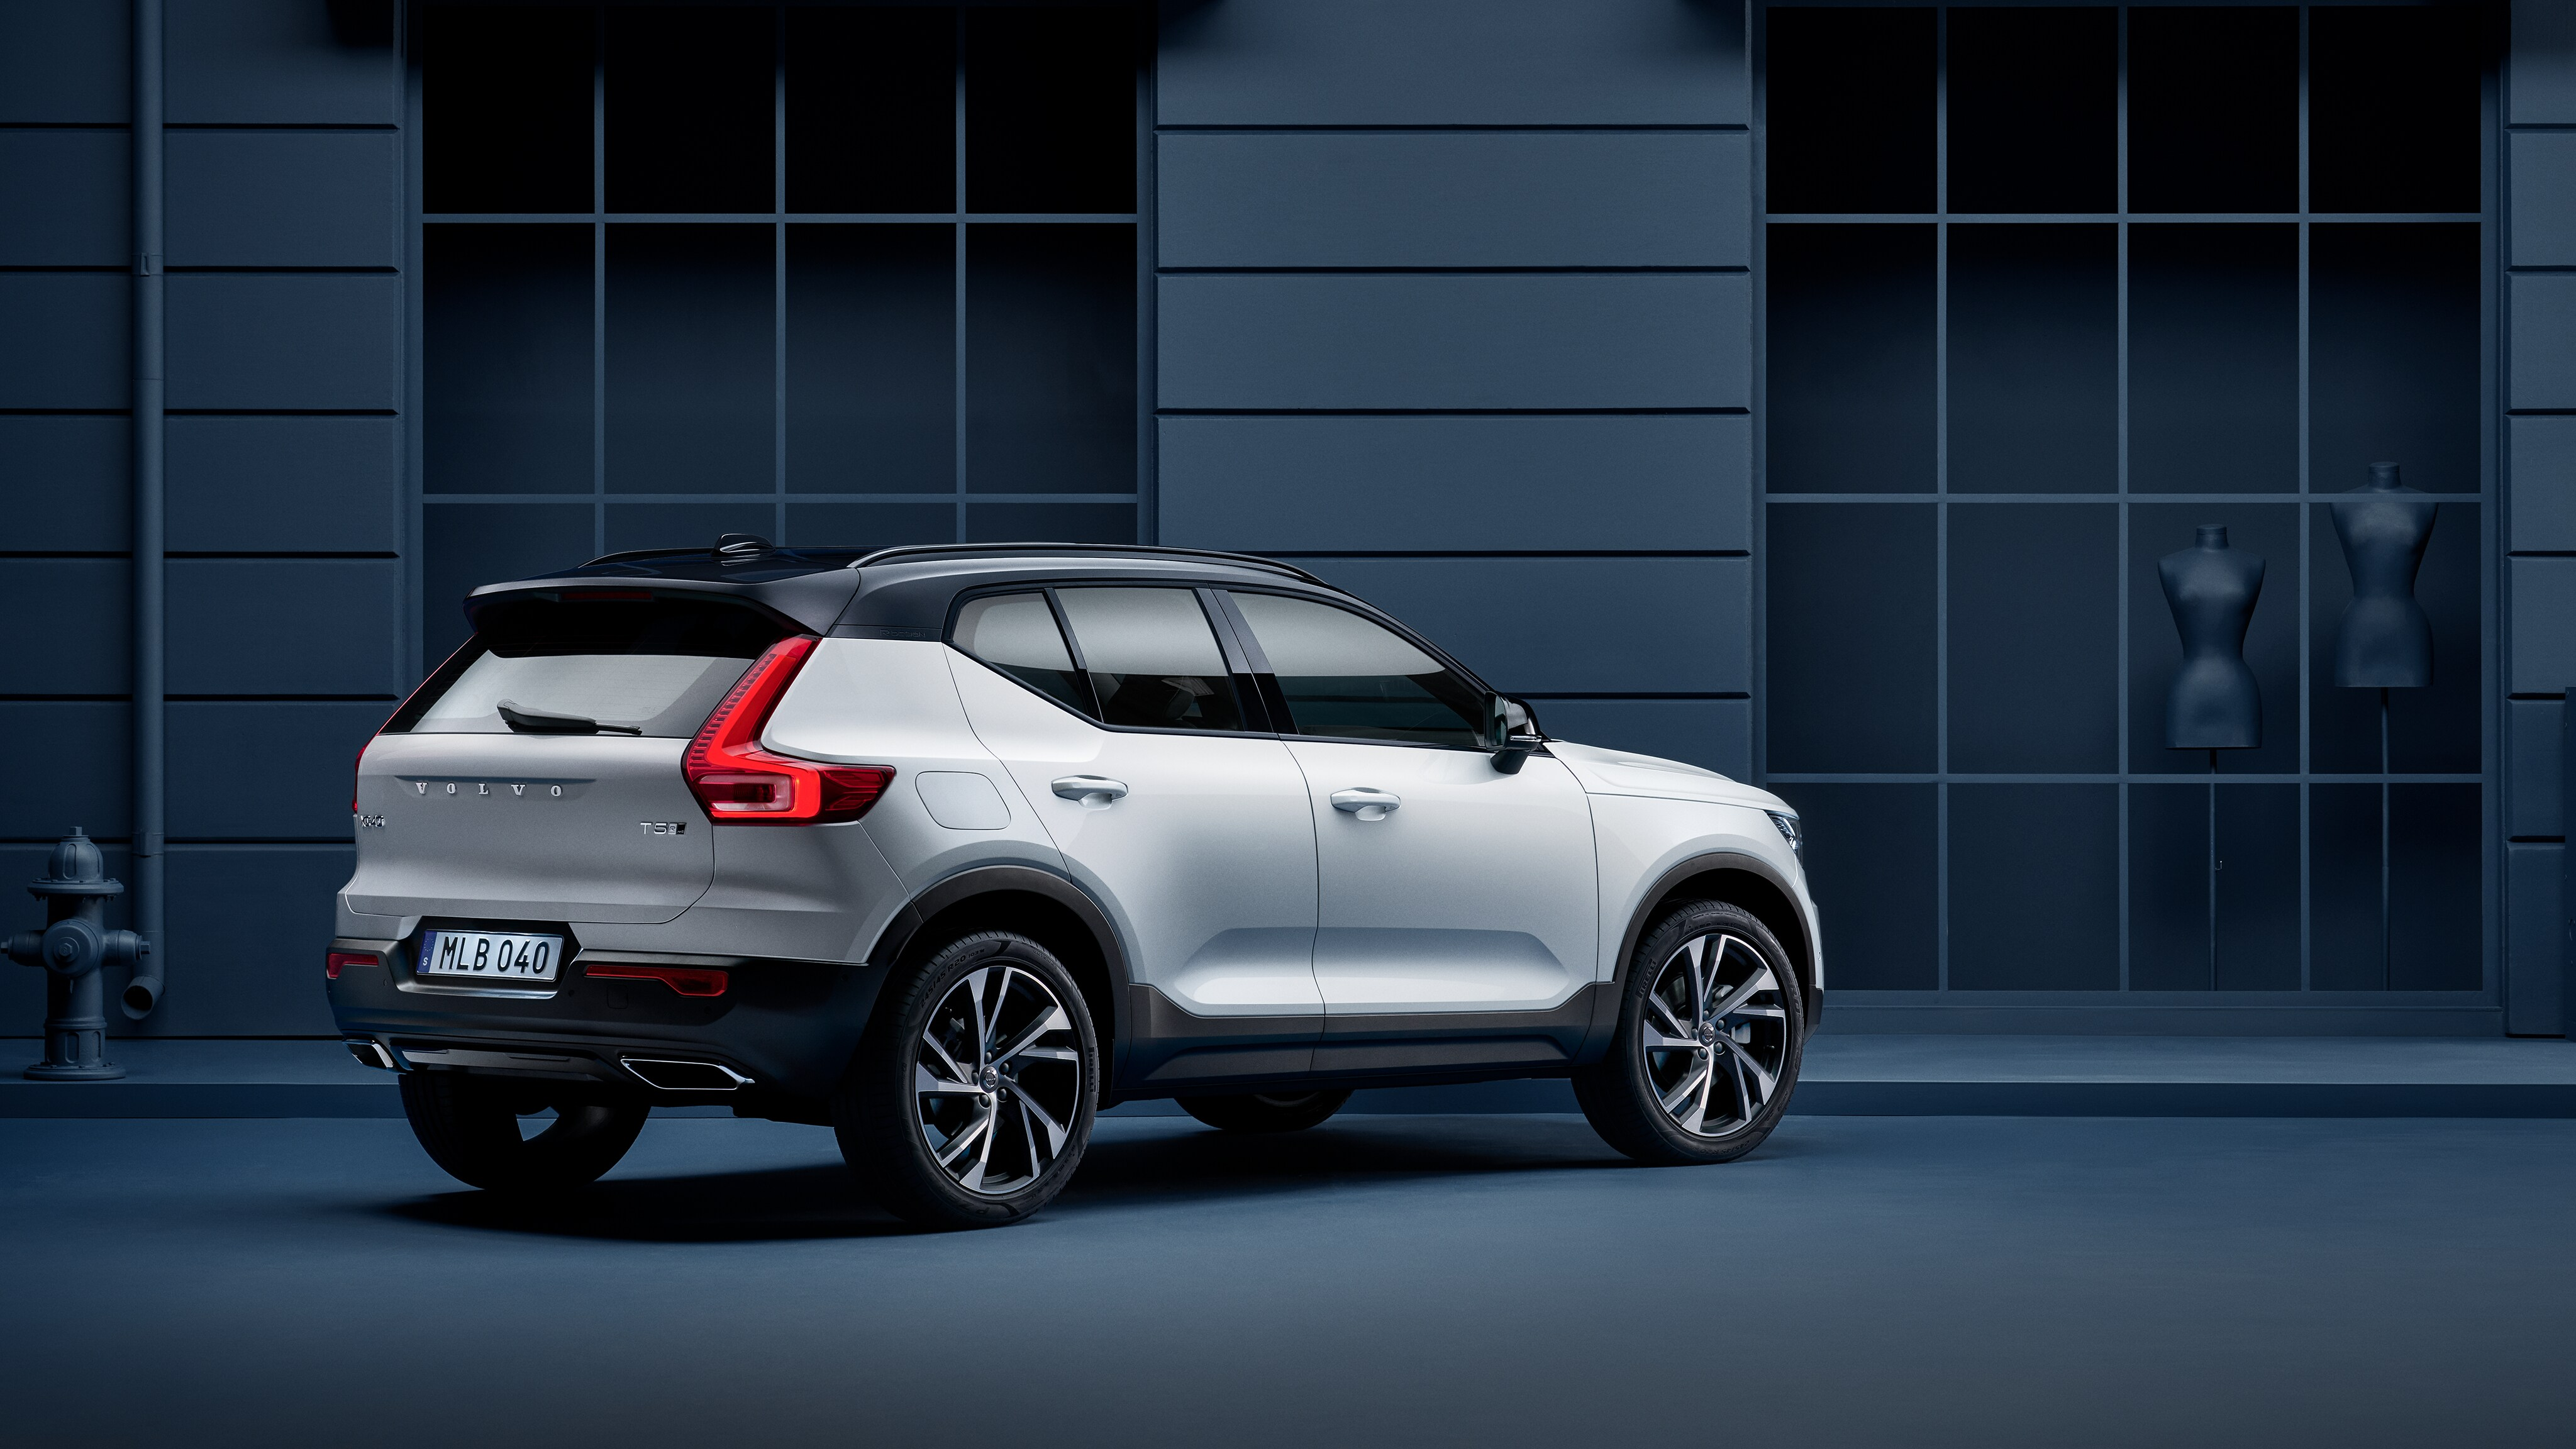 Momentum, A Lower Variant Of XC40, Will Be Launched By Volvo In India